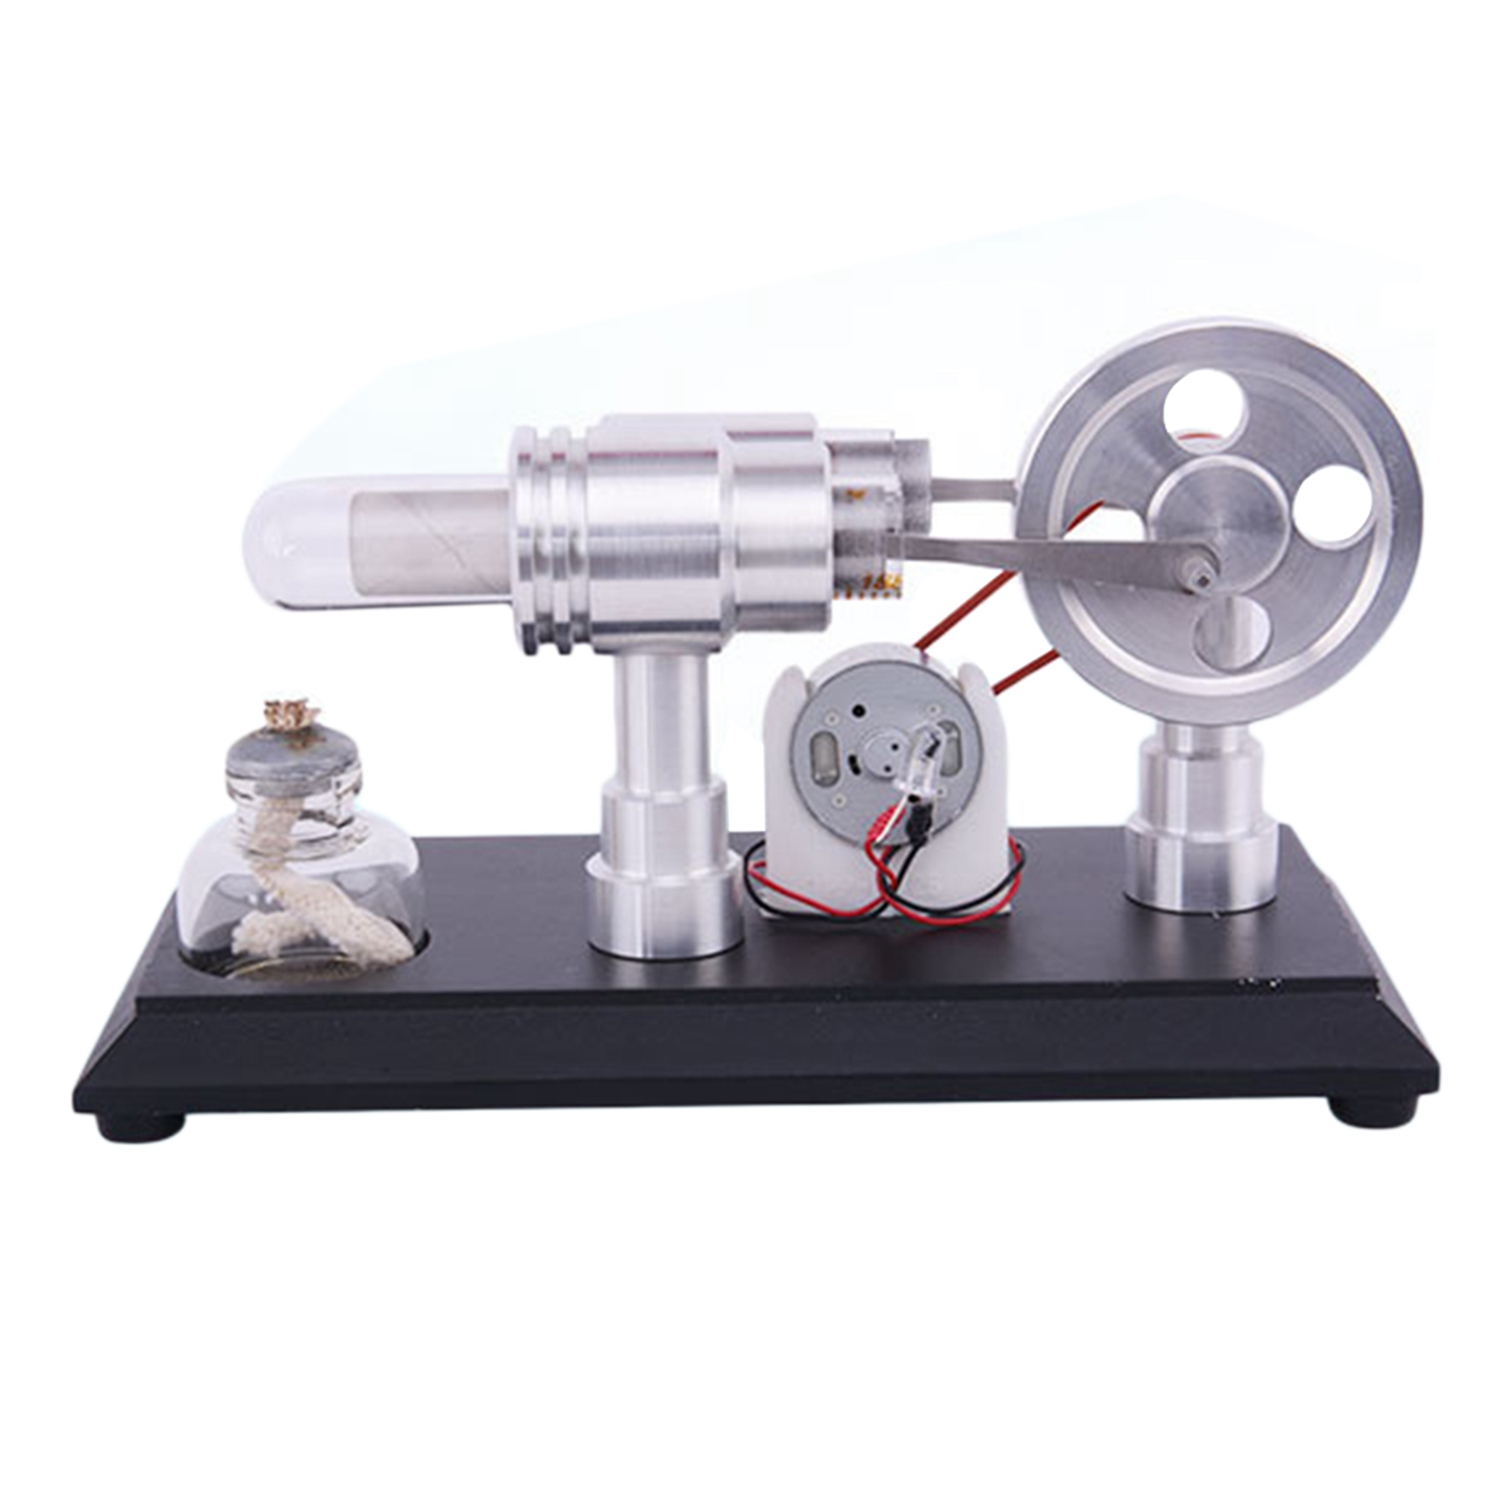 Double-Cylinder Micro-Diy Hot Air Stirling Engine Motor Model External Combustion Engine Early Learning Education Toys For KidDouble-Cylinder Micro-Diy Hot Air Stirling Engine Motor Model External Combustion Engine Early Learning Education Toys For Kid